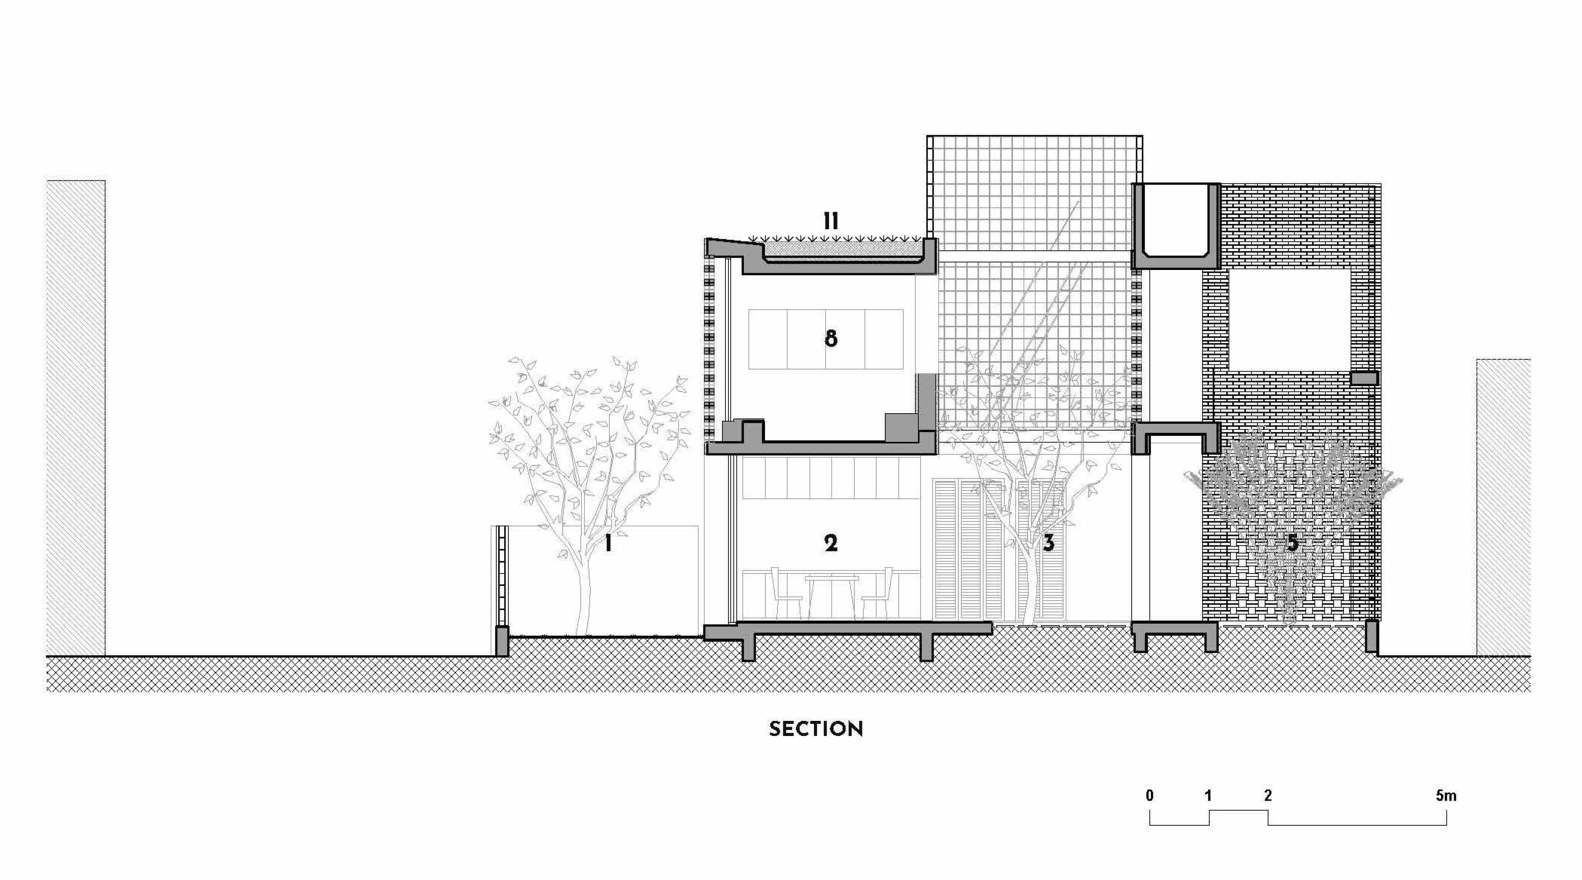 StudioHAPP_Phan_Thiet_House__Section